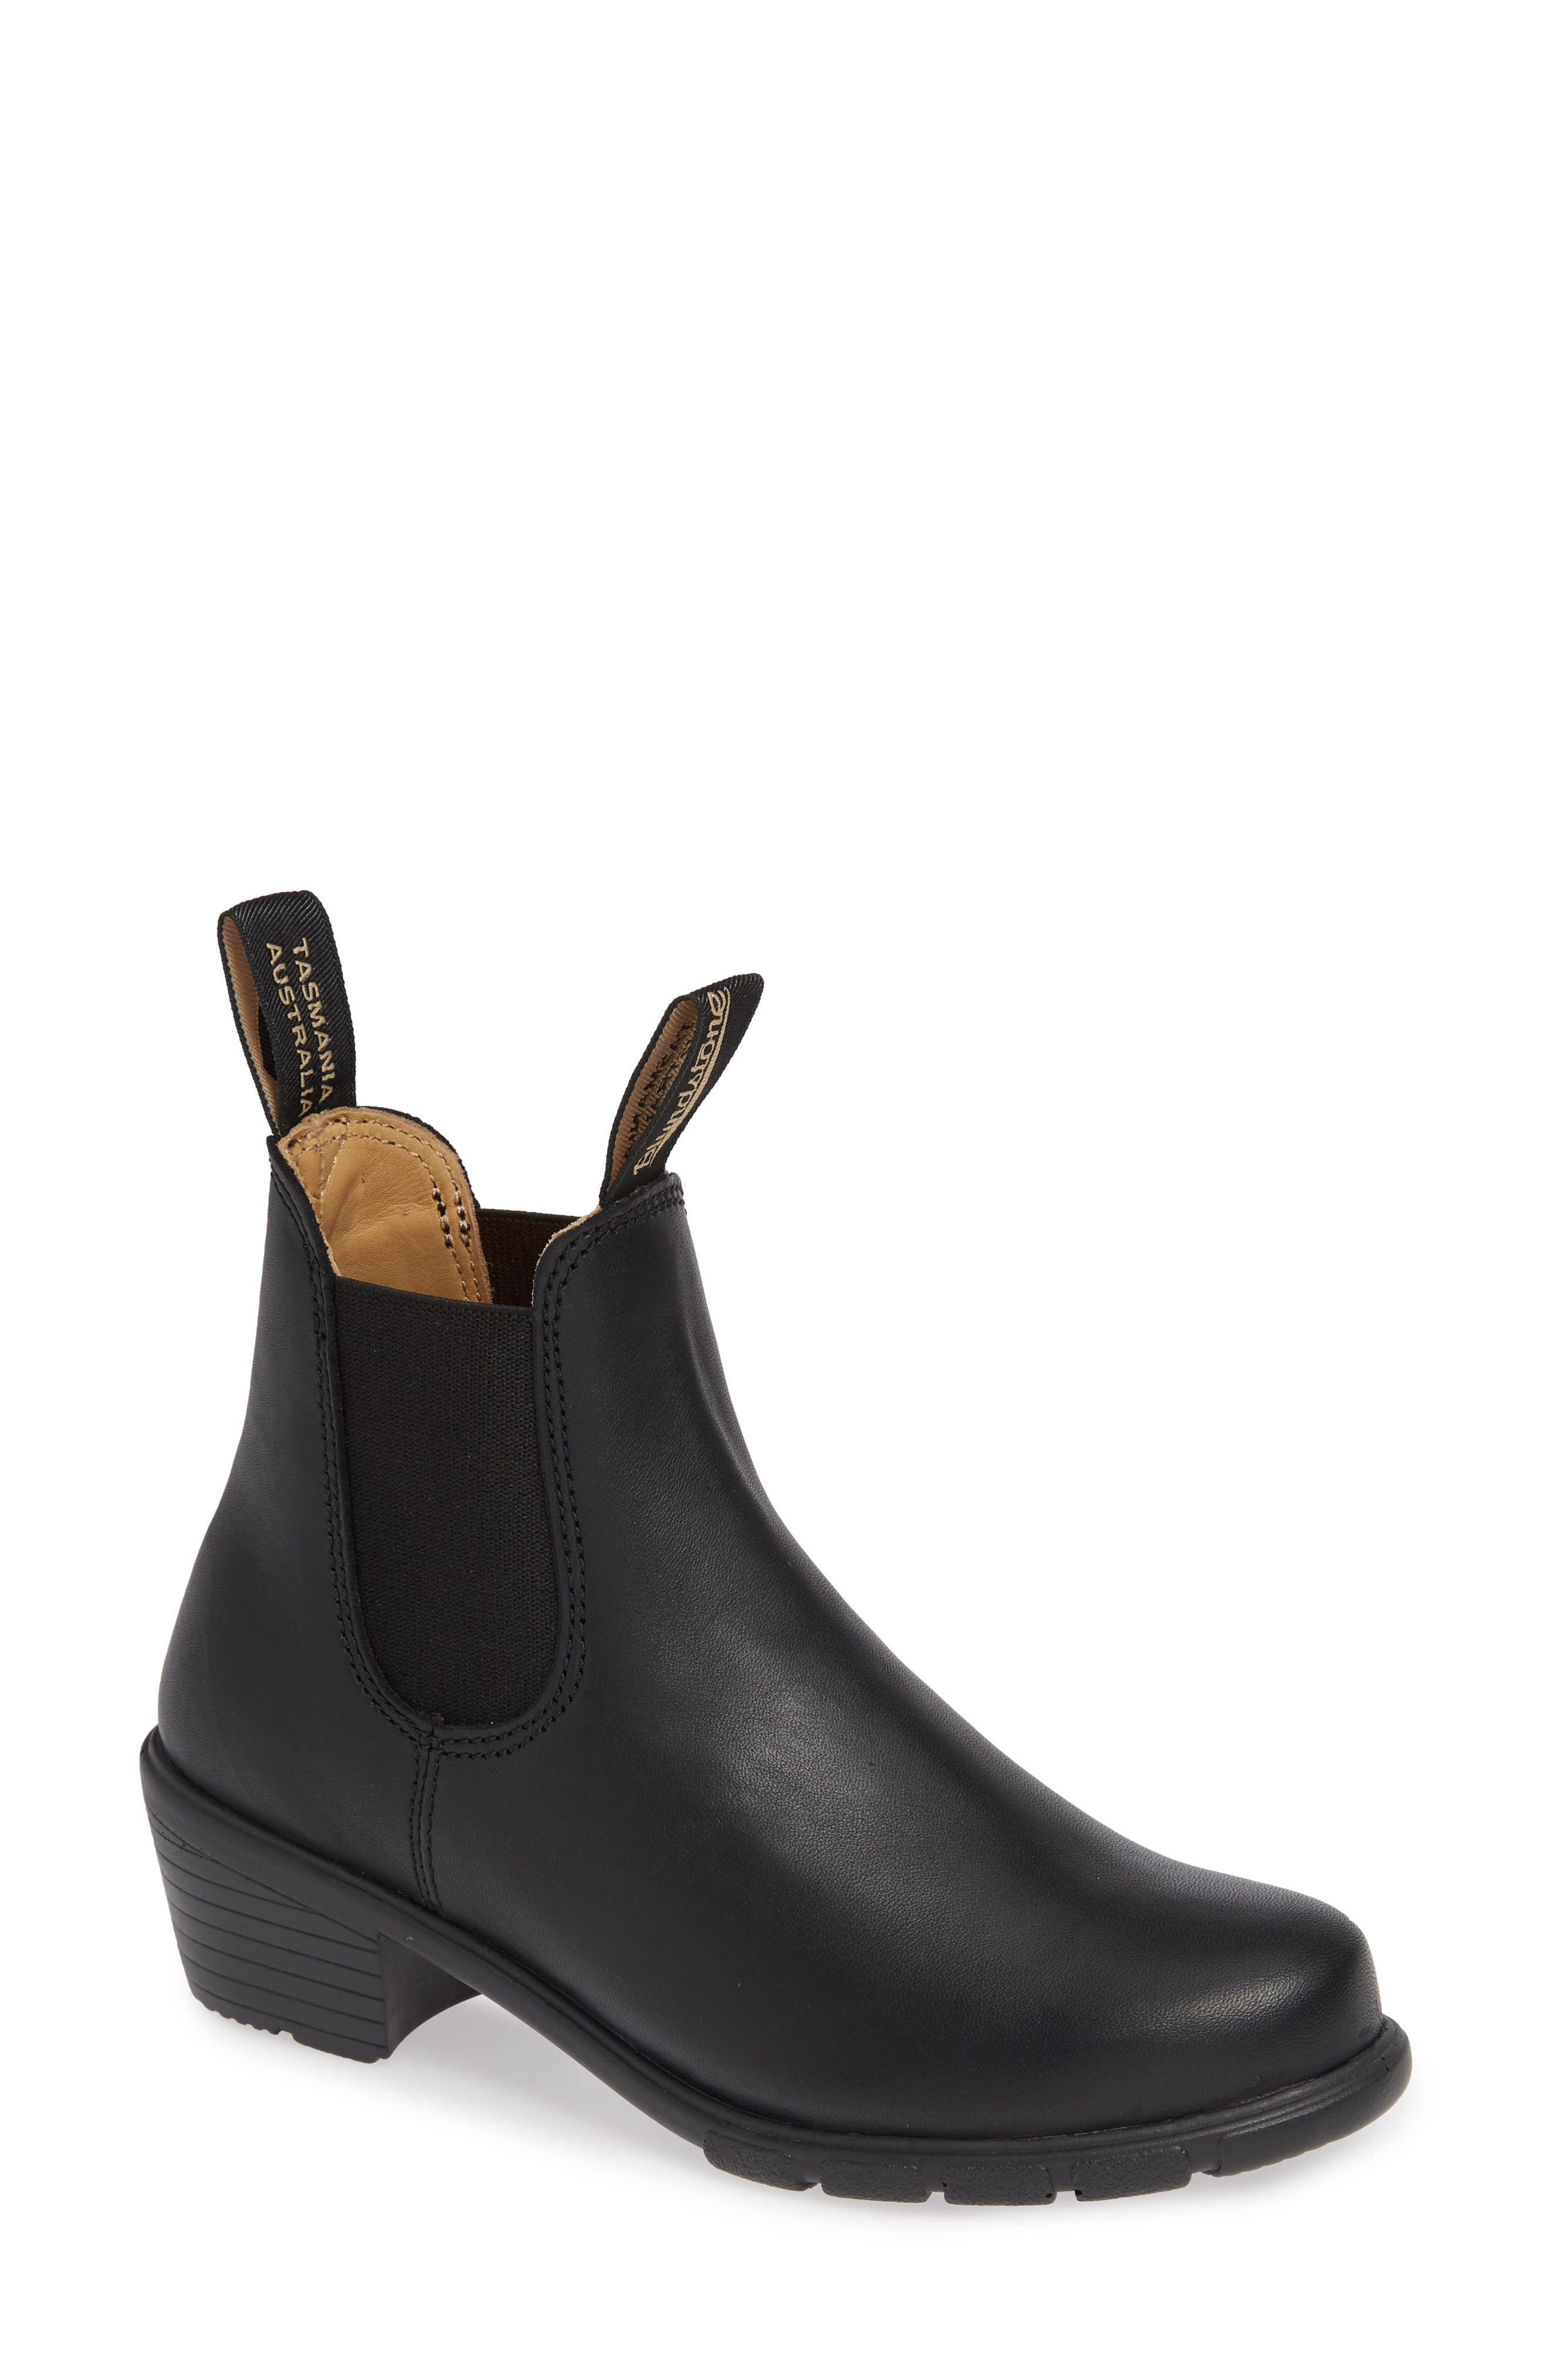 BLUNDSTONE 1671 Chelsea Boot in Black Leather